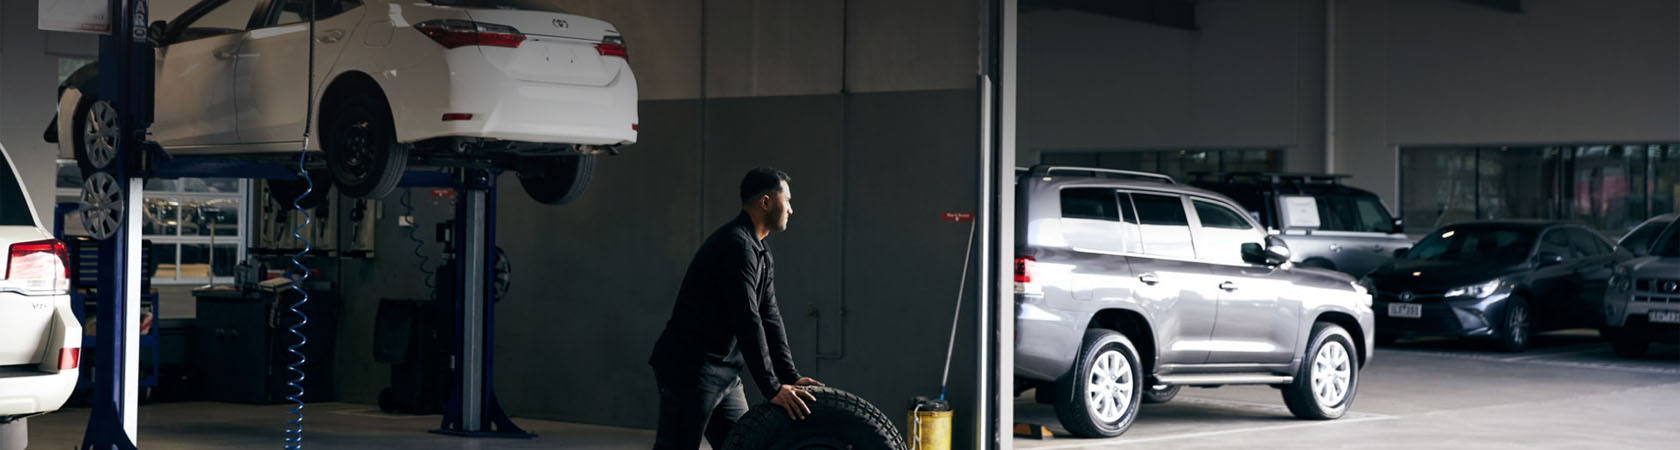 Canberra Toyota Vehicle Service